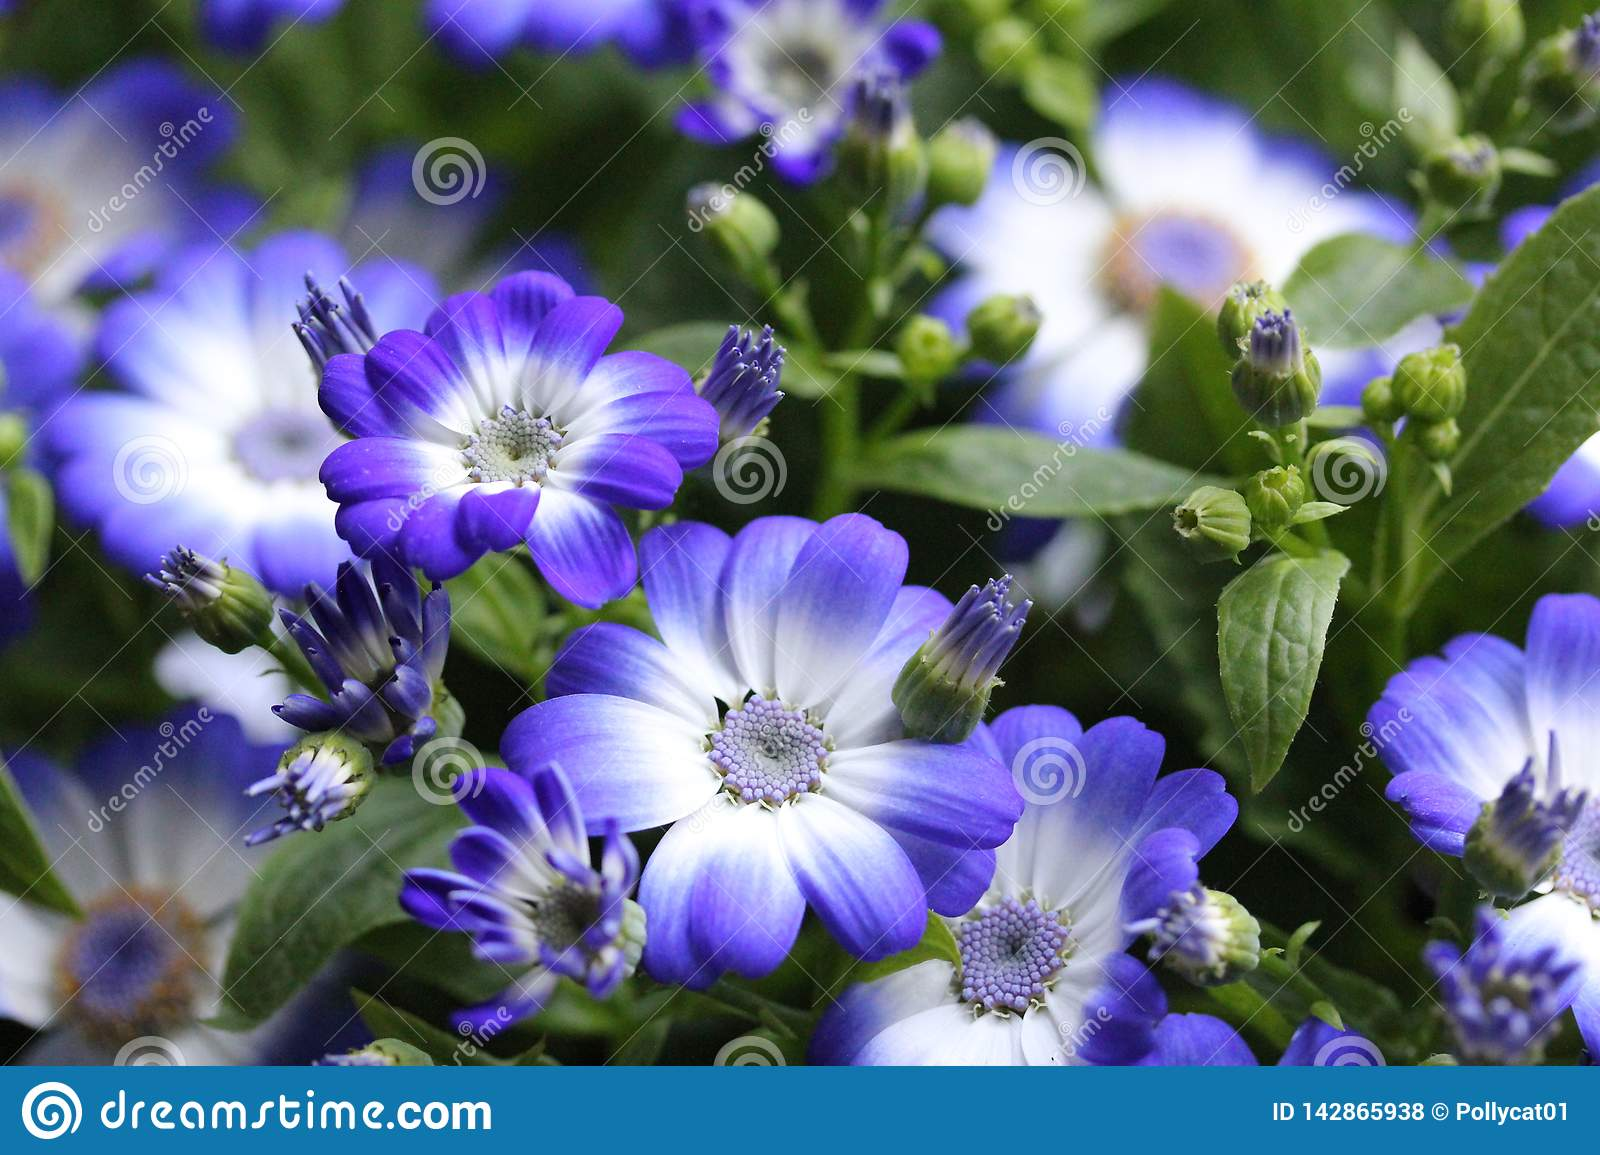 Blue flowers in the home garden 2